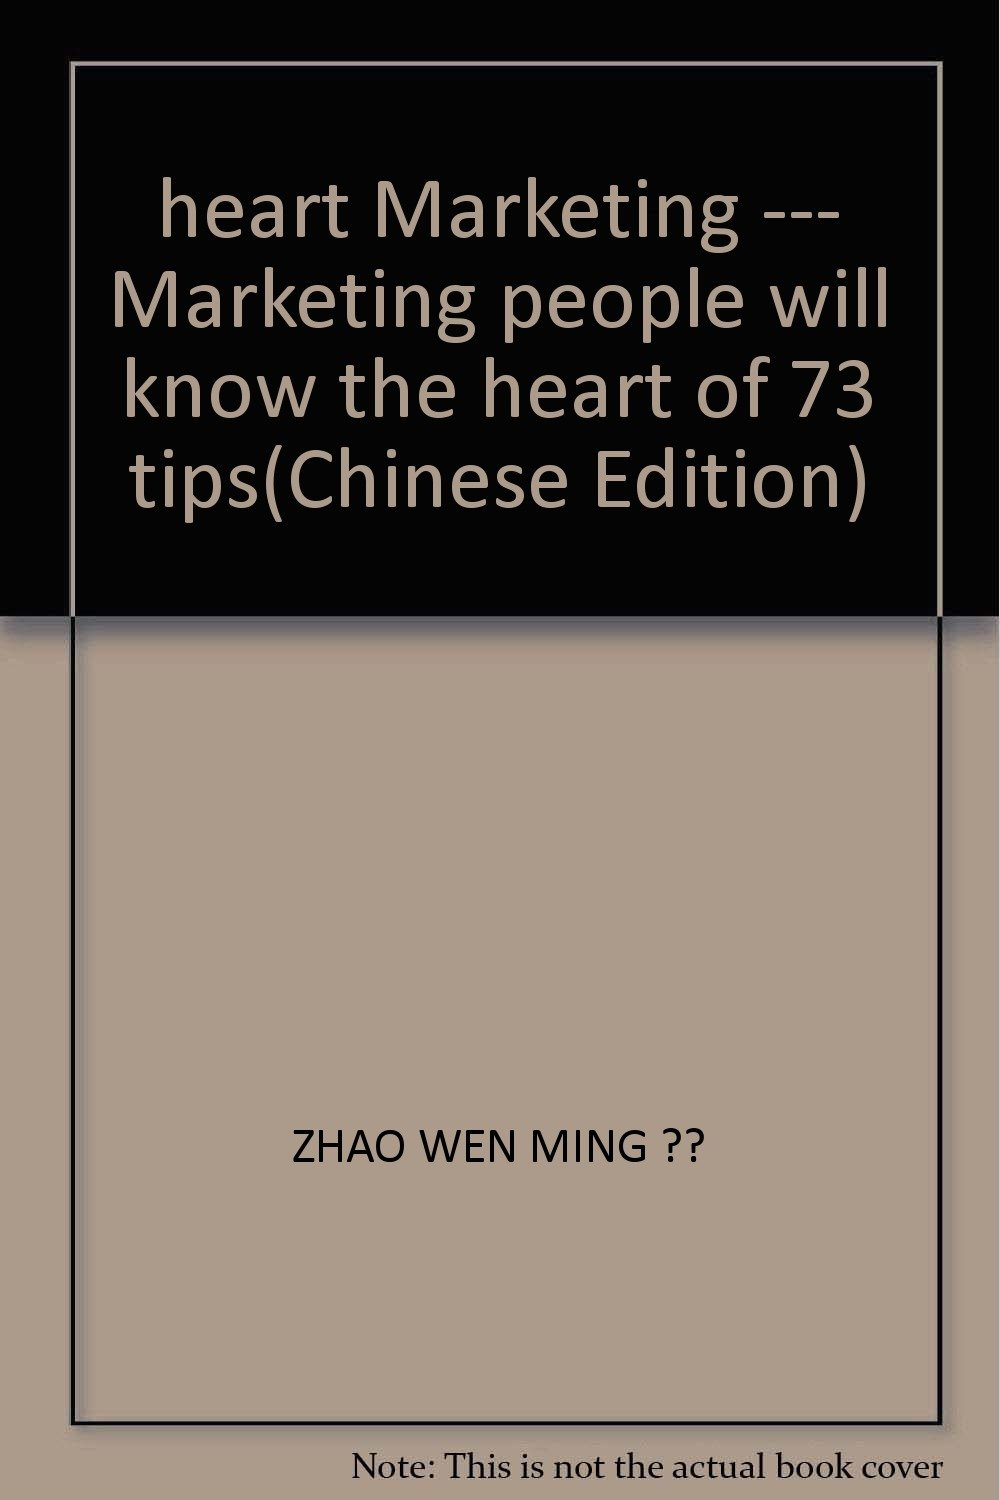 heart Marketing --- Marketing people will know the heart of 73 tips(Chinese Edition) PDF